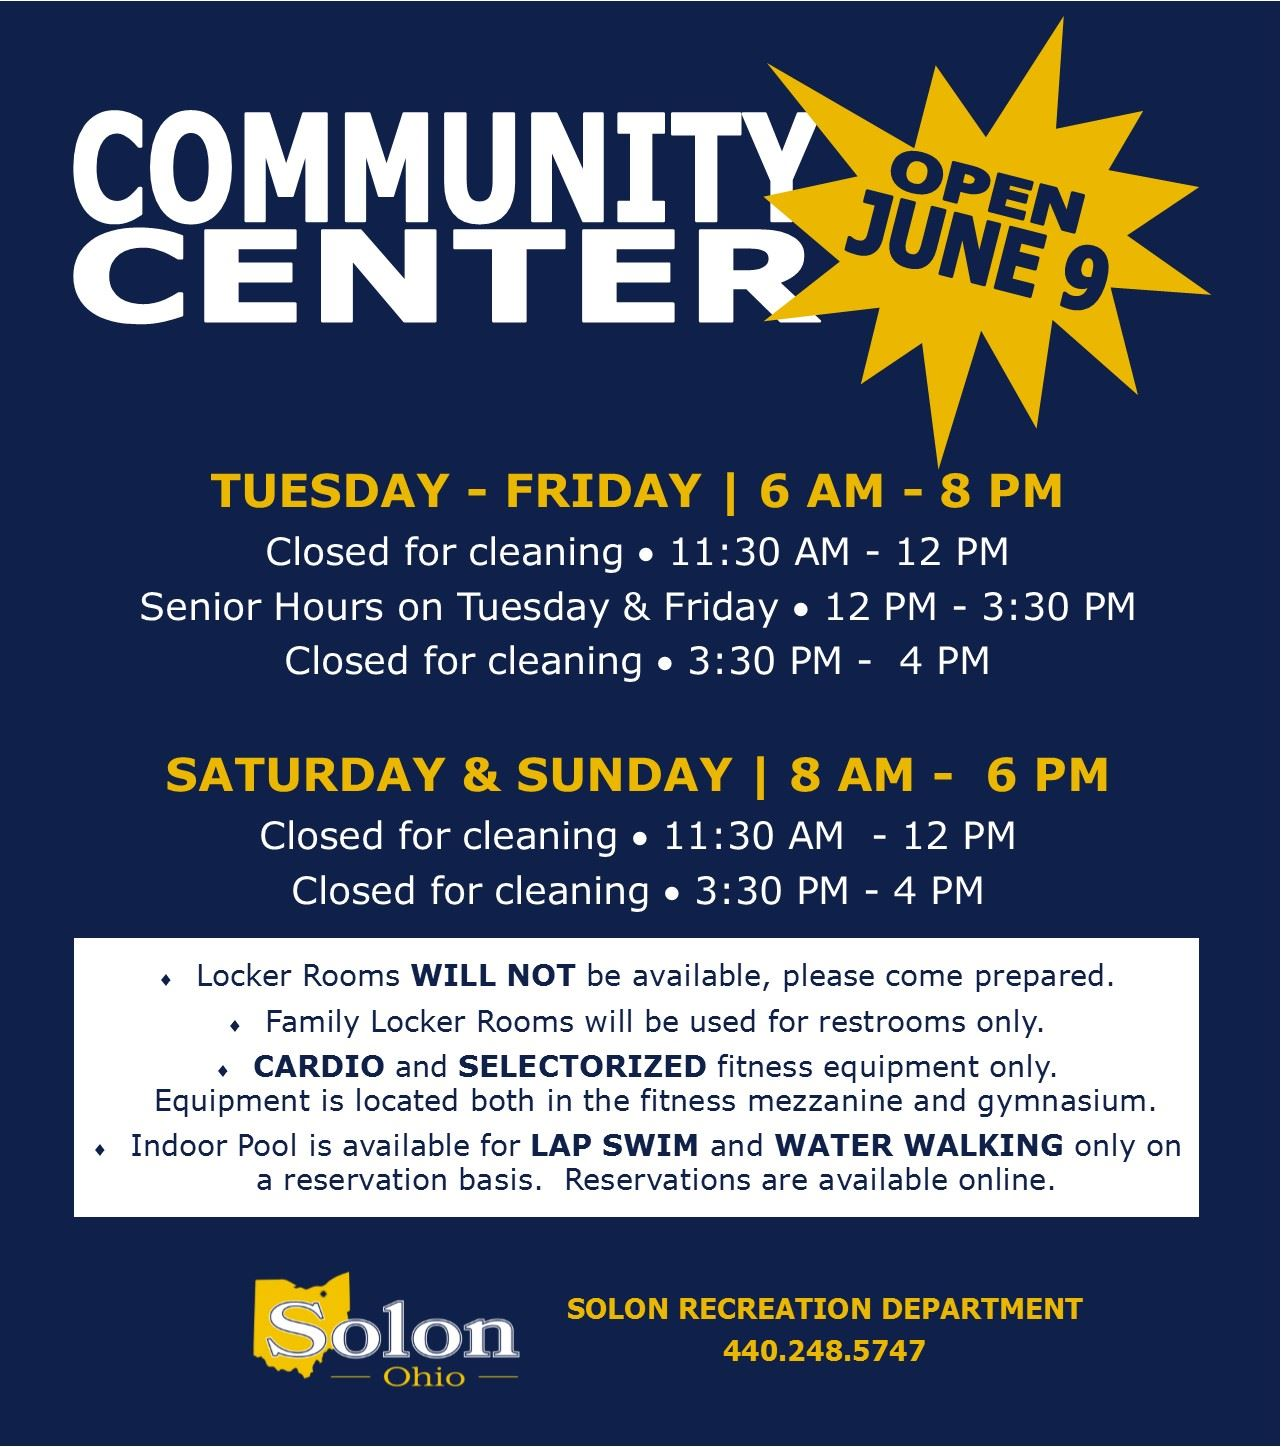 Community Center ReOpen Hours